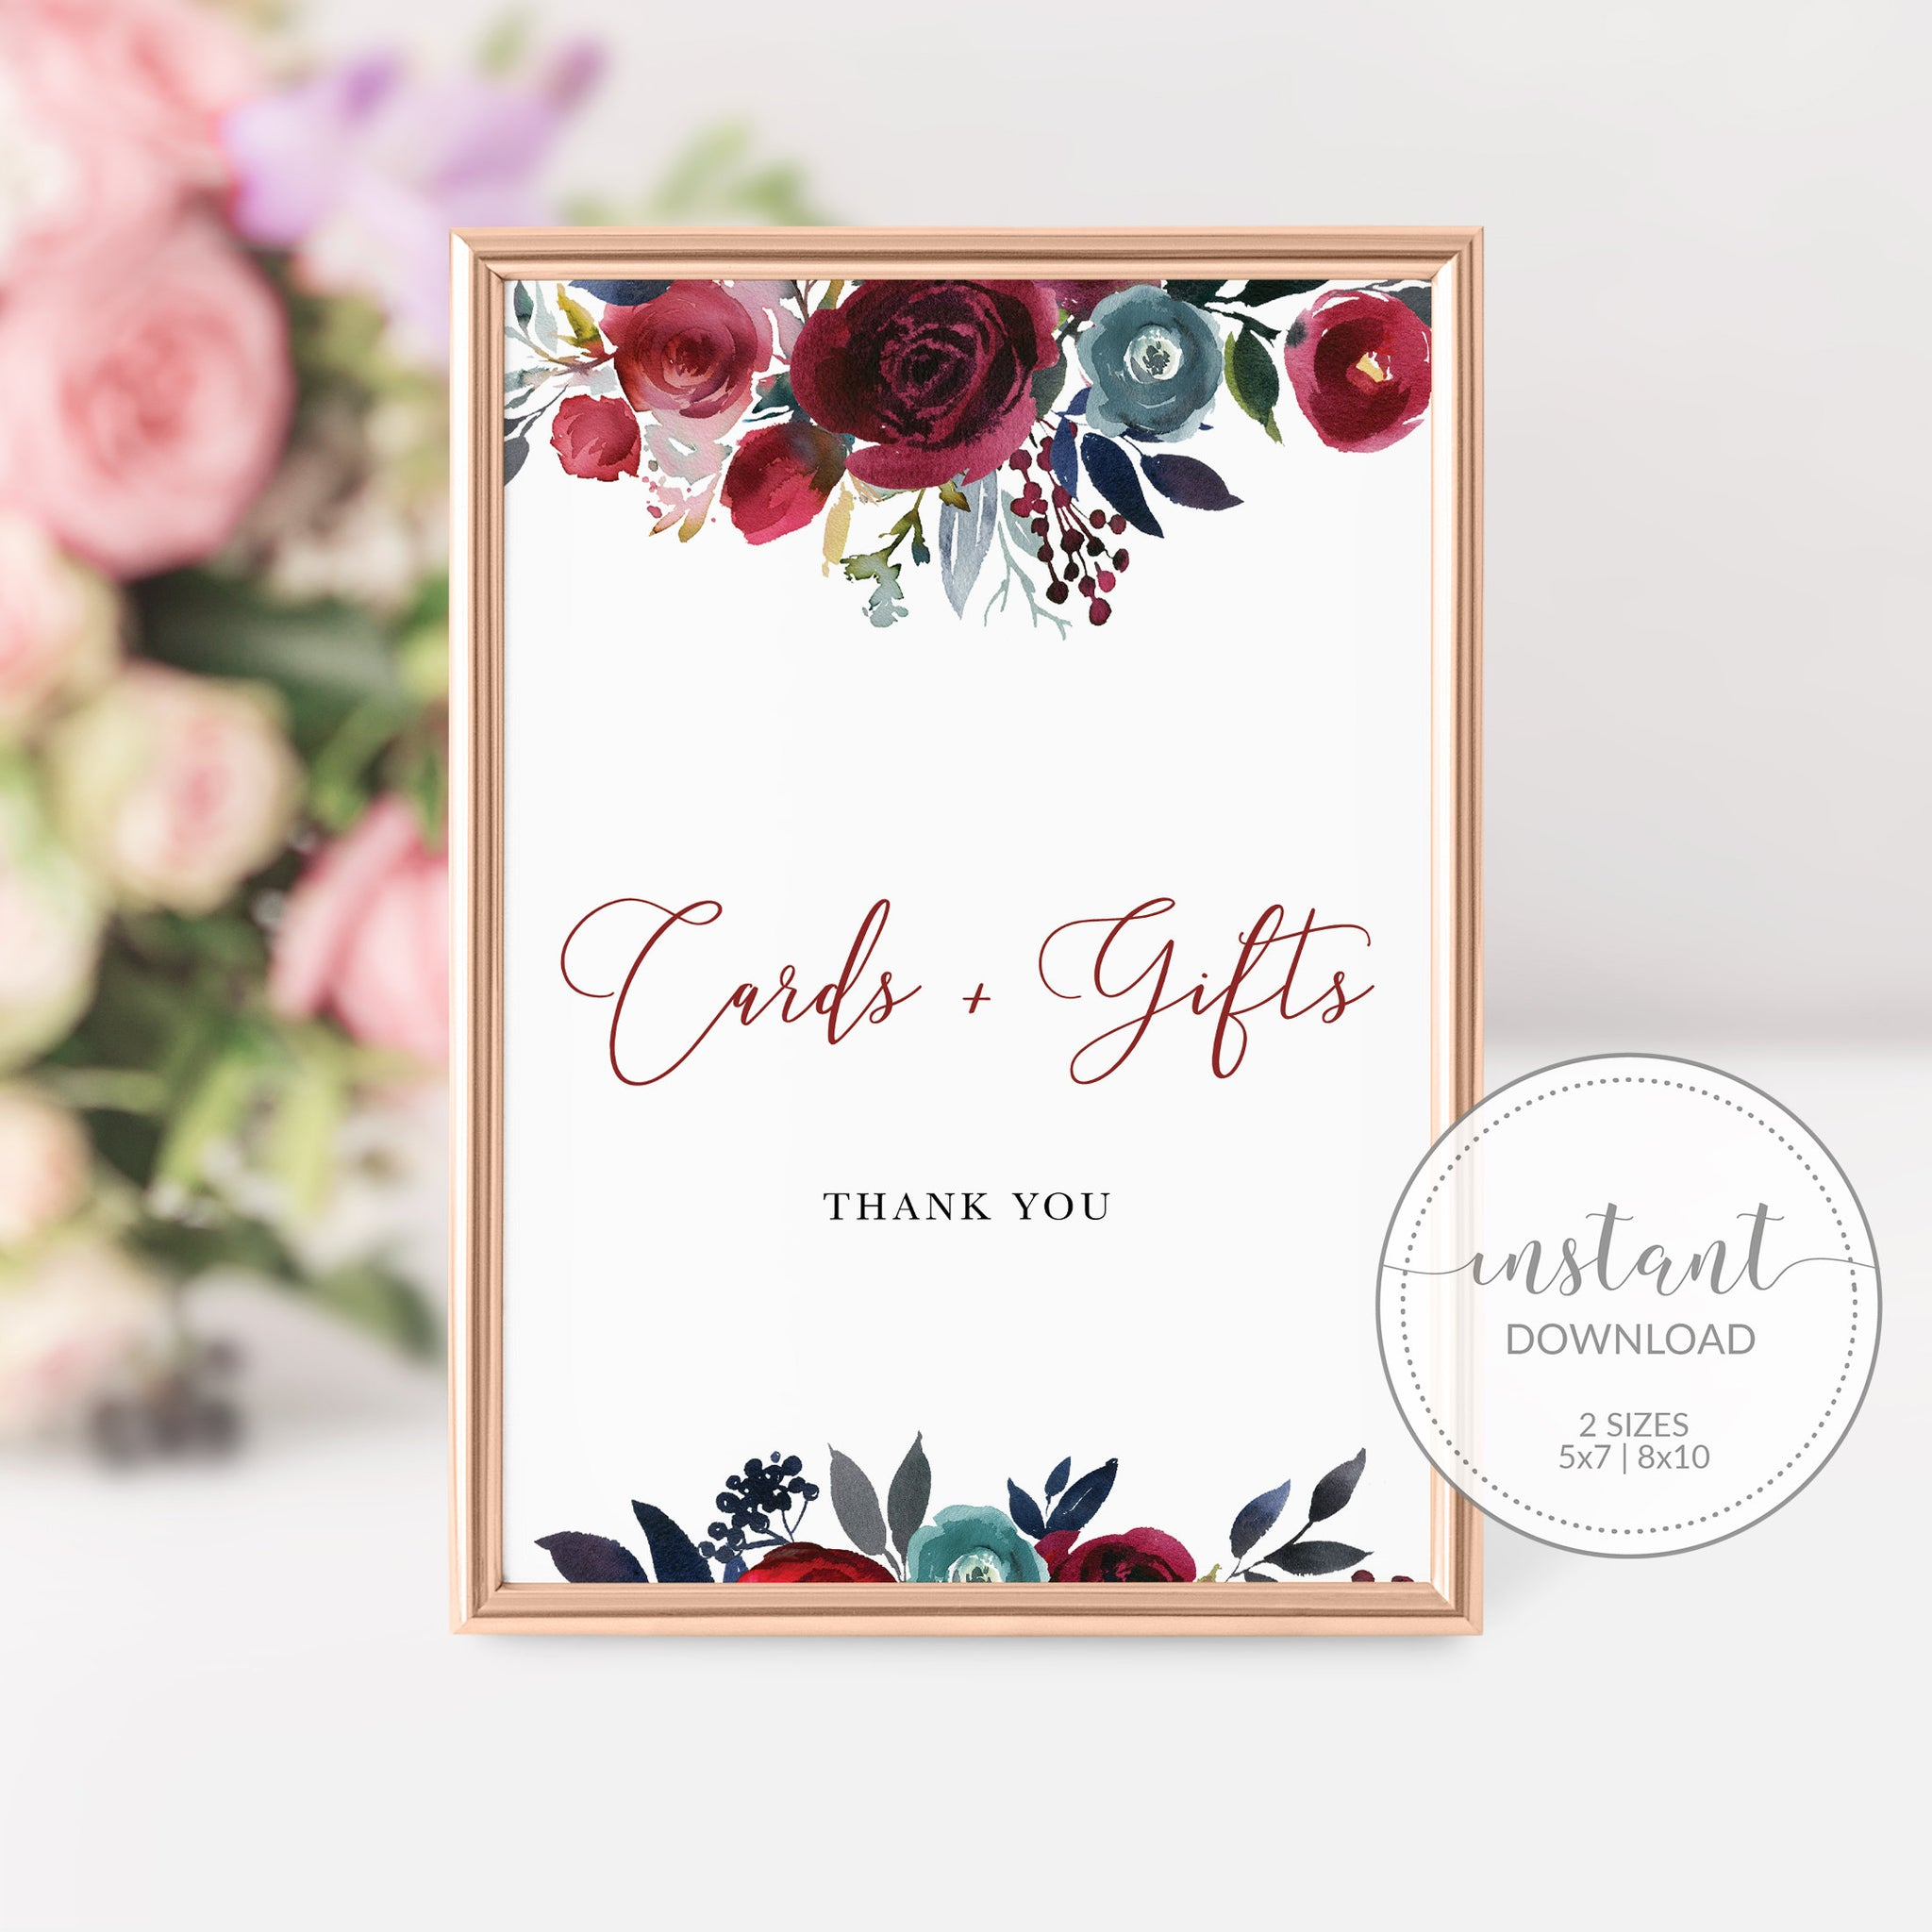 Burgundy Wedding Decor, Cards and Gifts Sign Printable, Burgundy and Navy Wedding, INSTANT DOWNLOAD - BB100